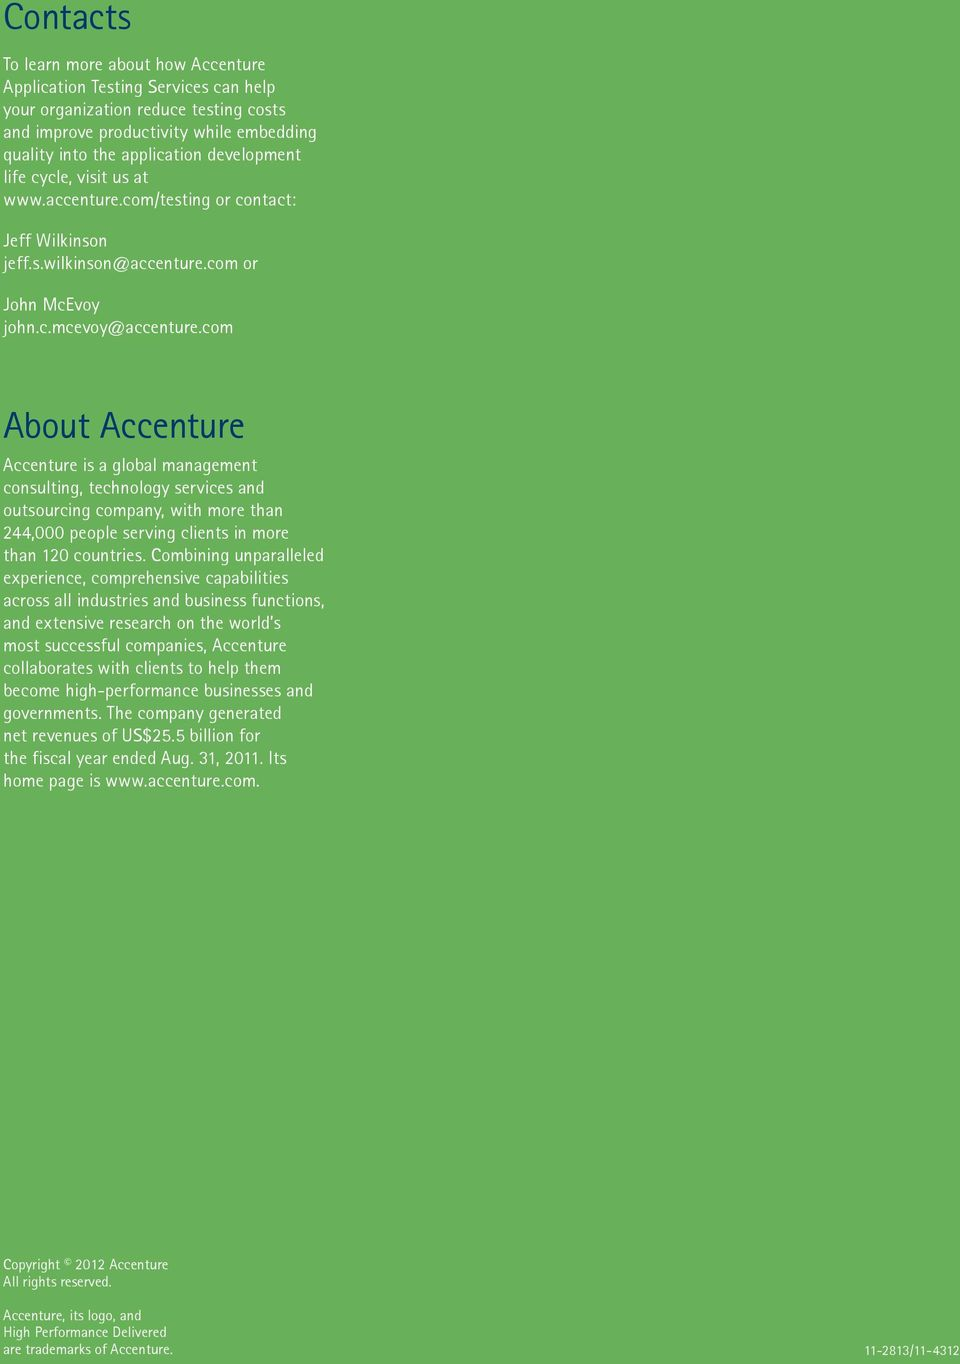 com About Accenture Accenture is a global management consulting, technology services and outsourcing company, with more than 244,000 people serving clients in more than 120 countries.